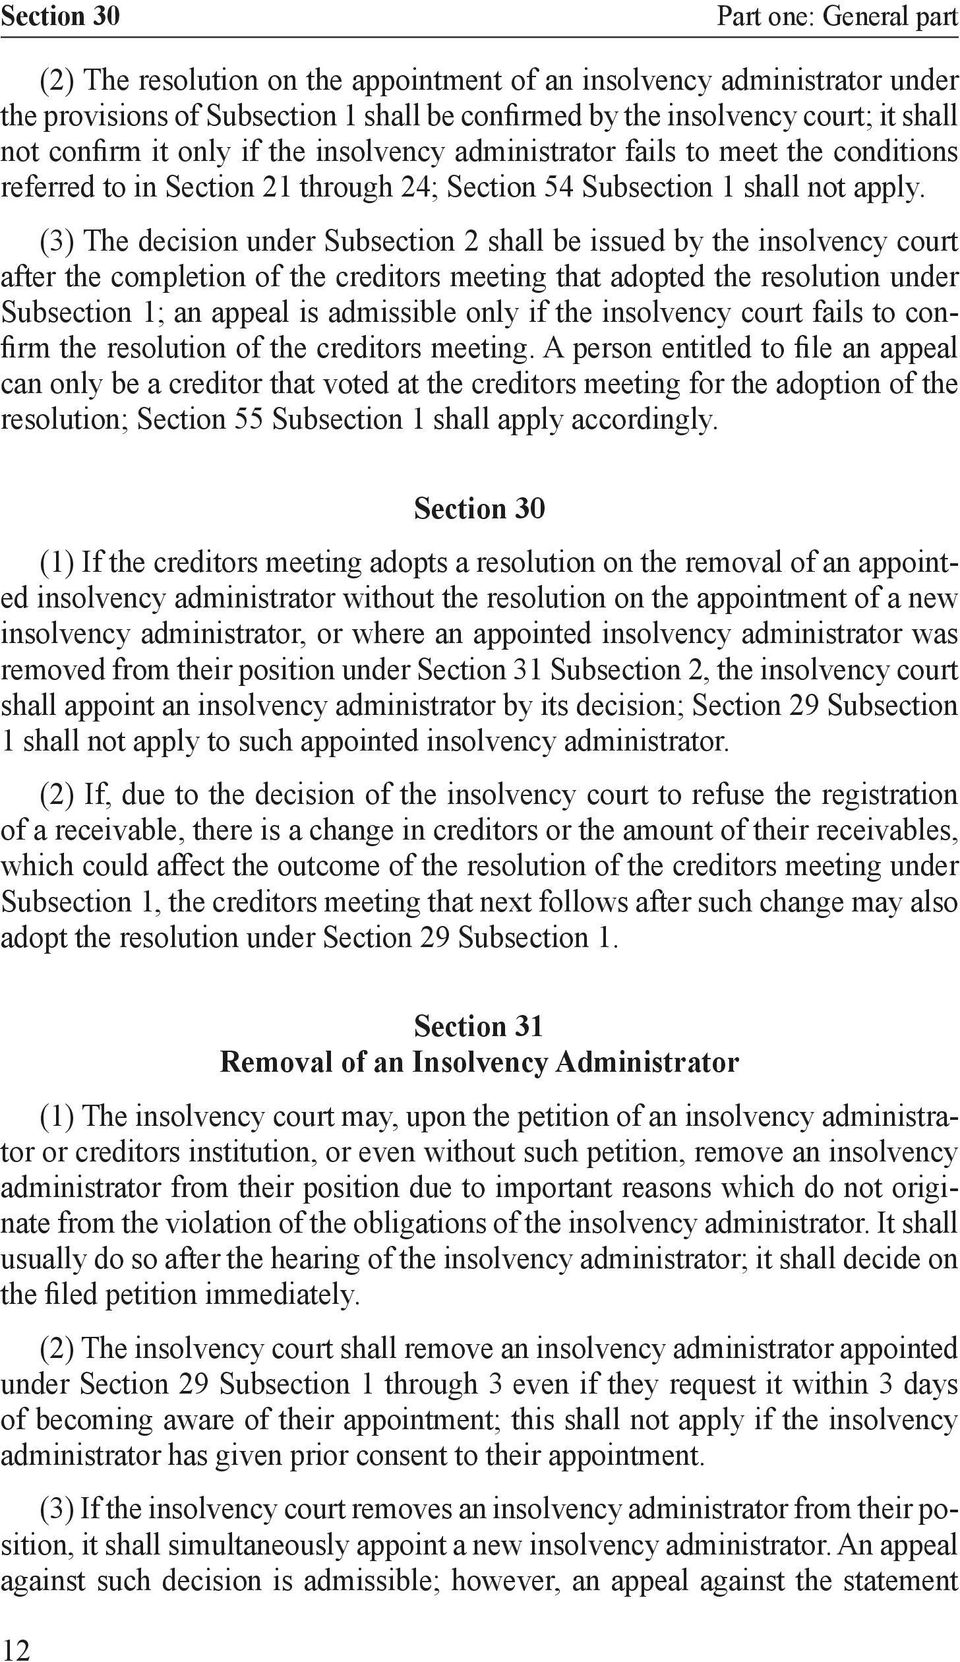 (3) The decision under Subsection 2 shall be issued by the insolvency court after the completion of the creditors meeting that adopted the resolution under Subsection 1; an appeal is admissible only